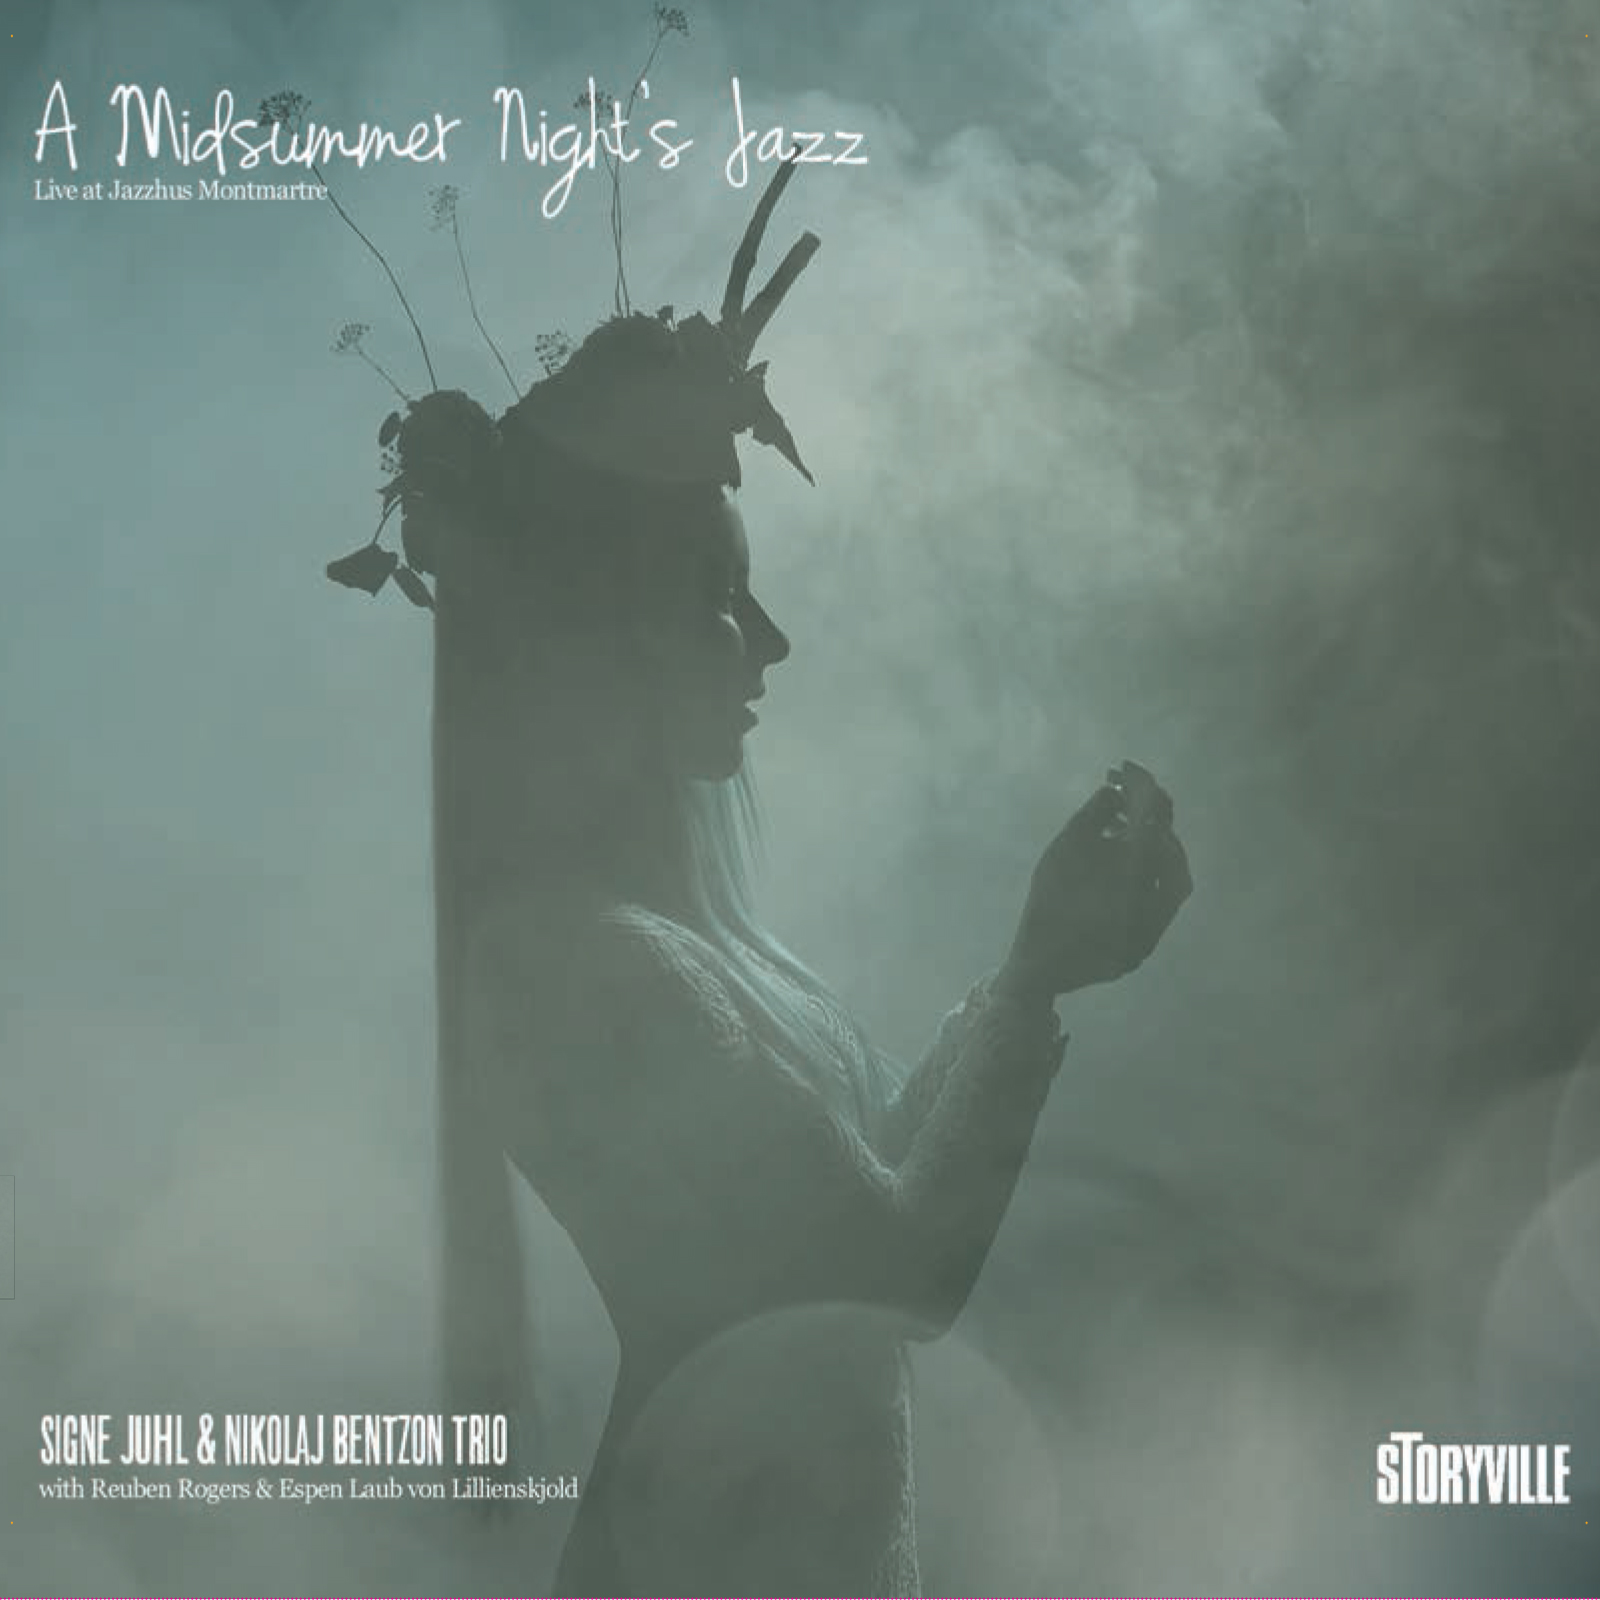 A Midsummer Night's Jazz - Storyville Records - The Best in